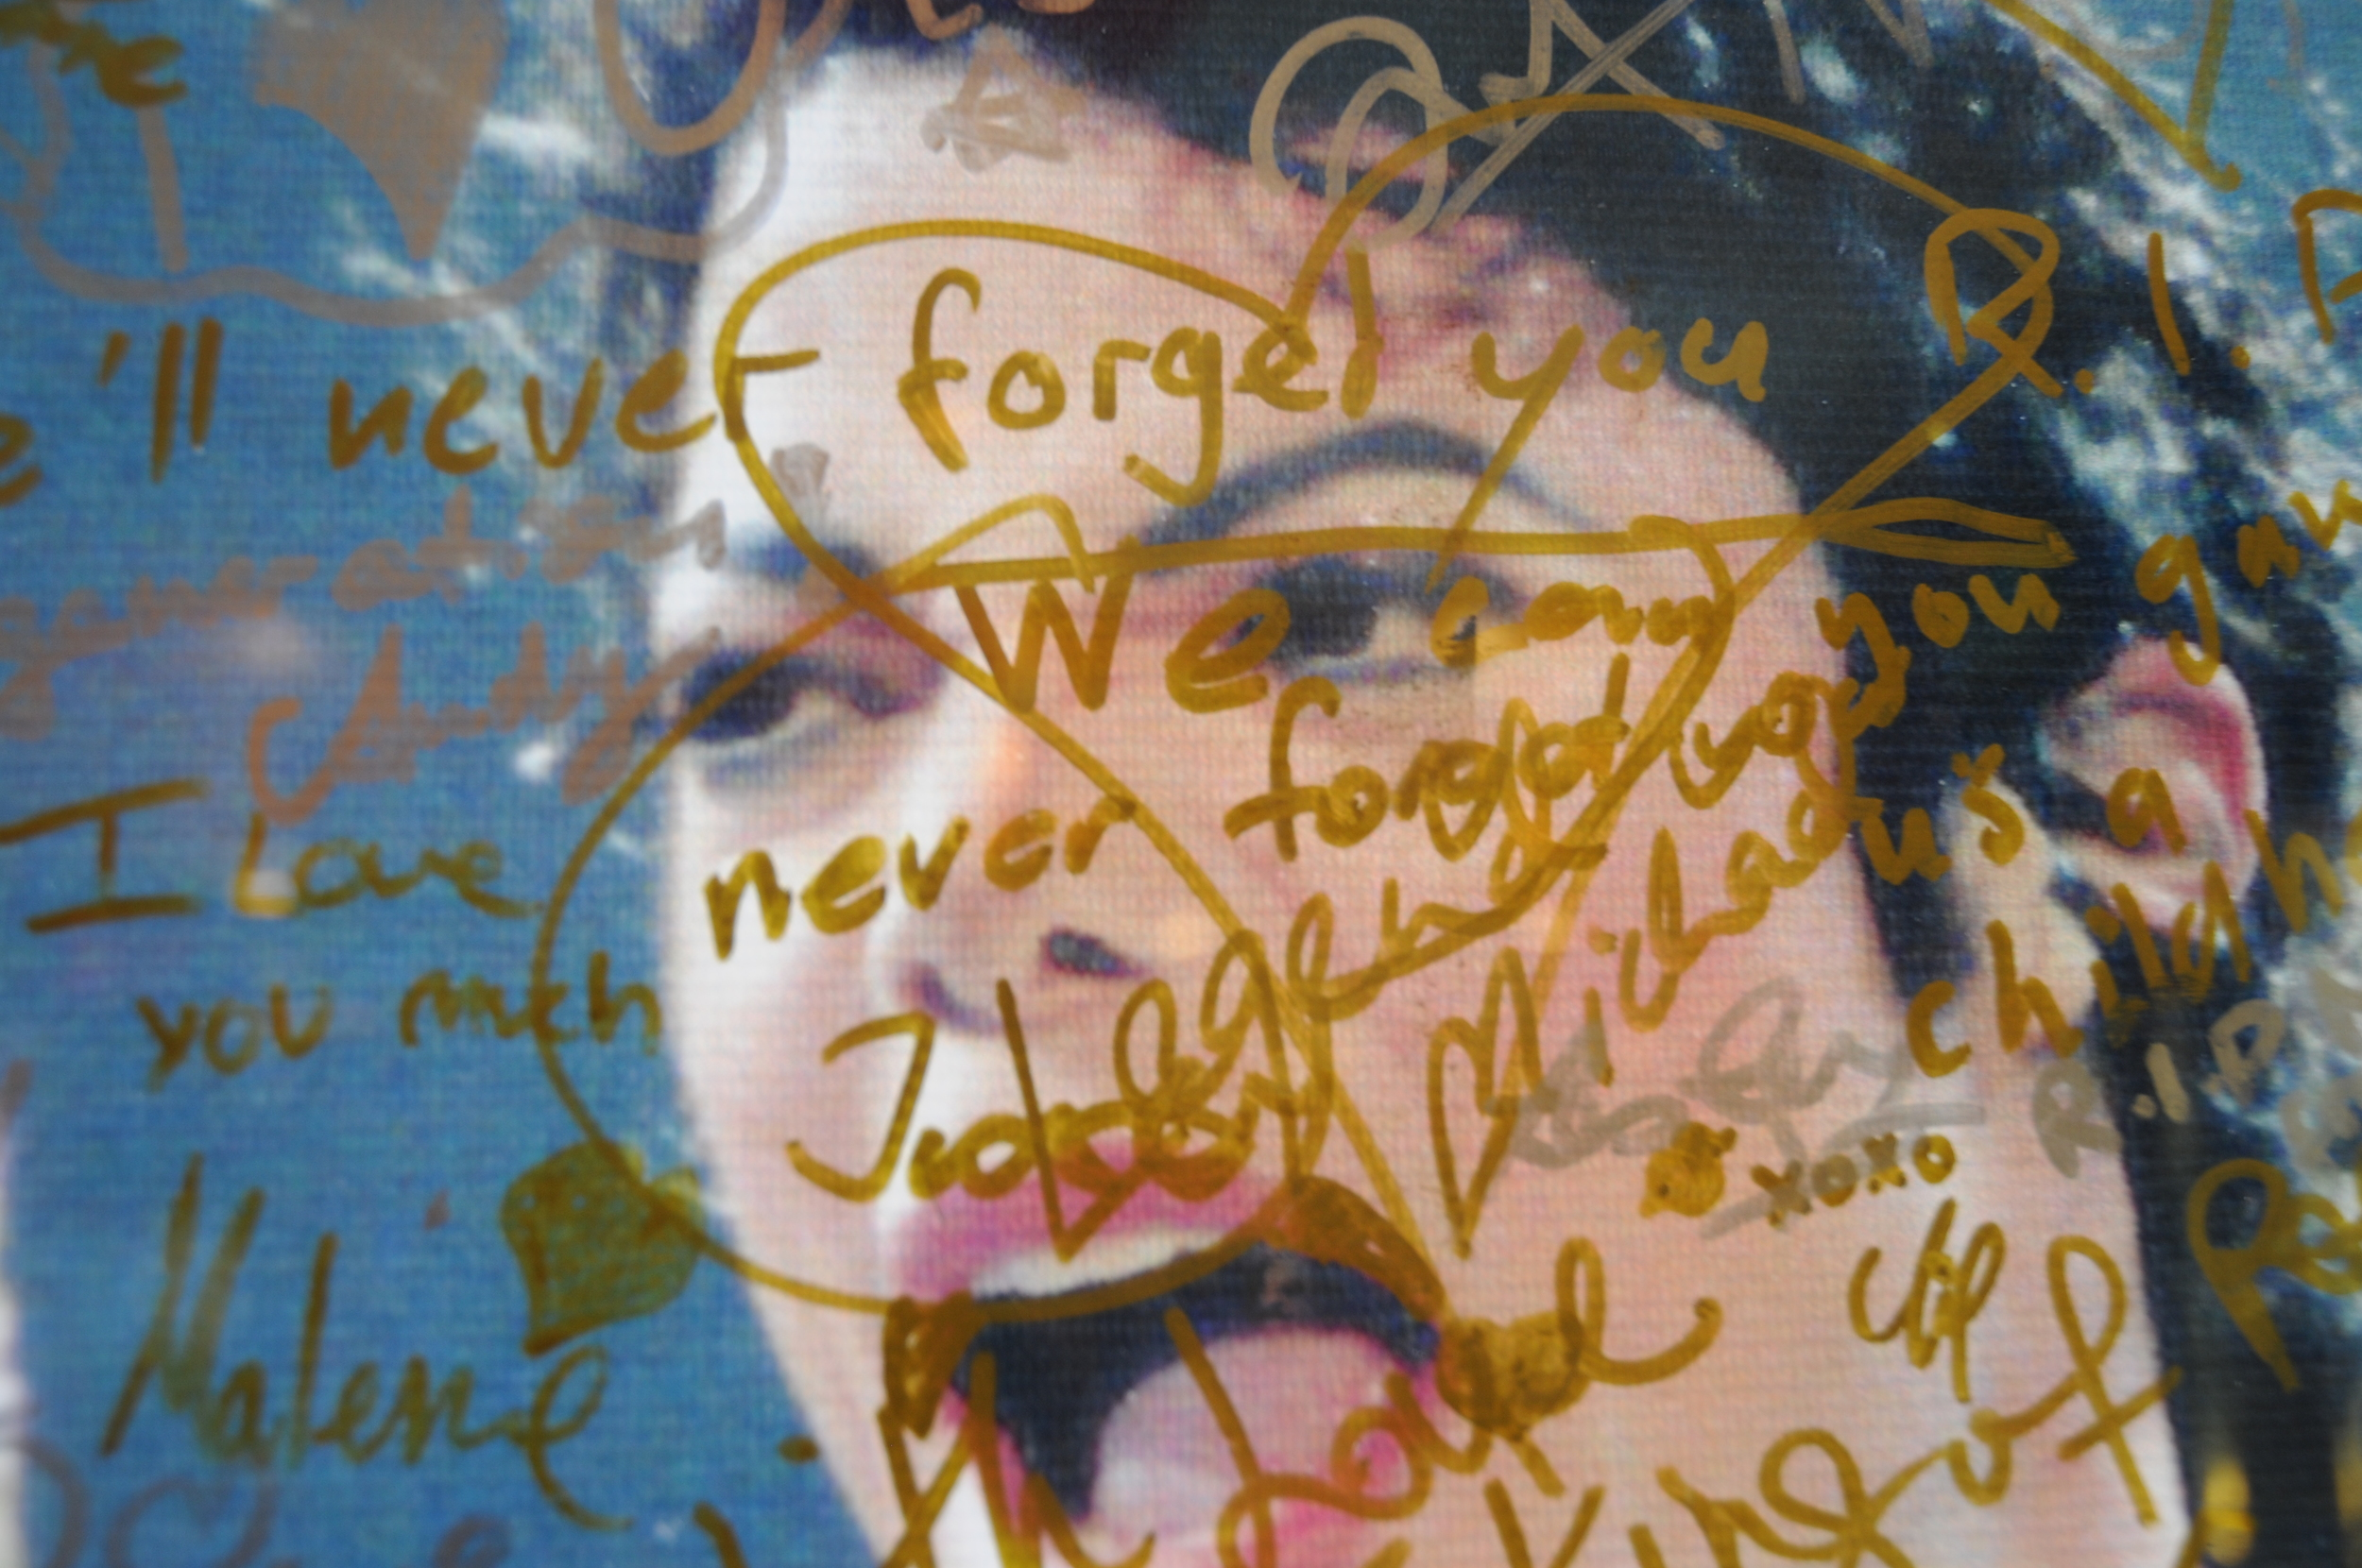 A poster outside of a Hard Rock Cafe in Singapore, marked with the memorial messages of fans.